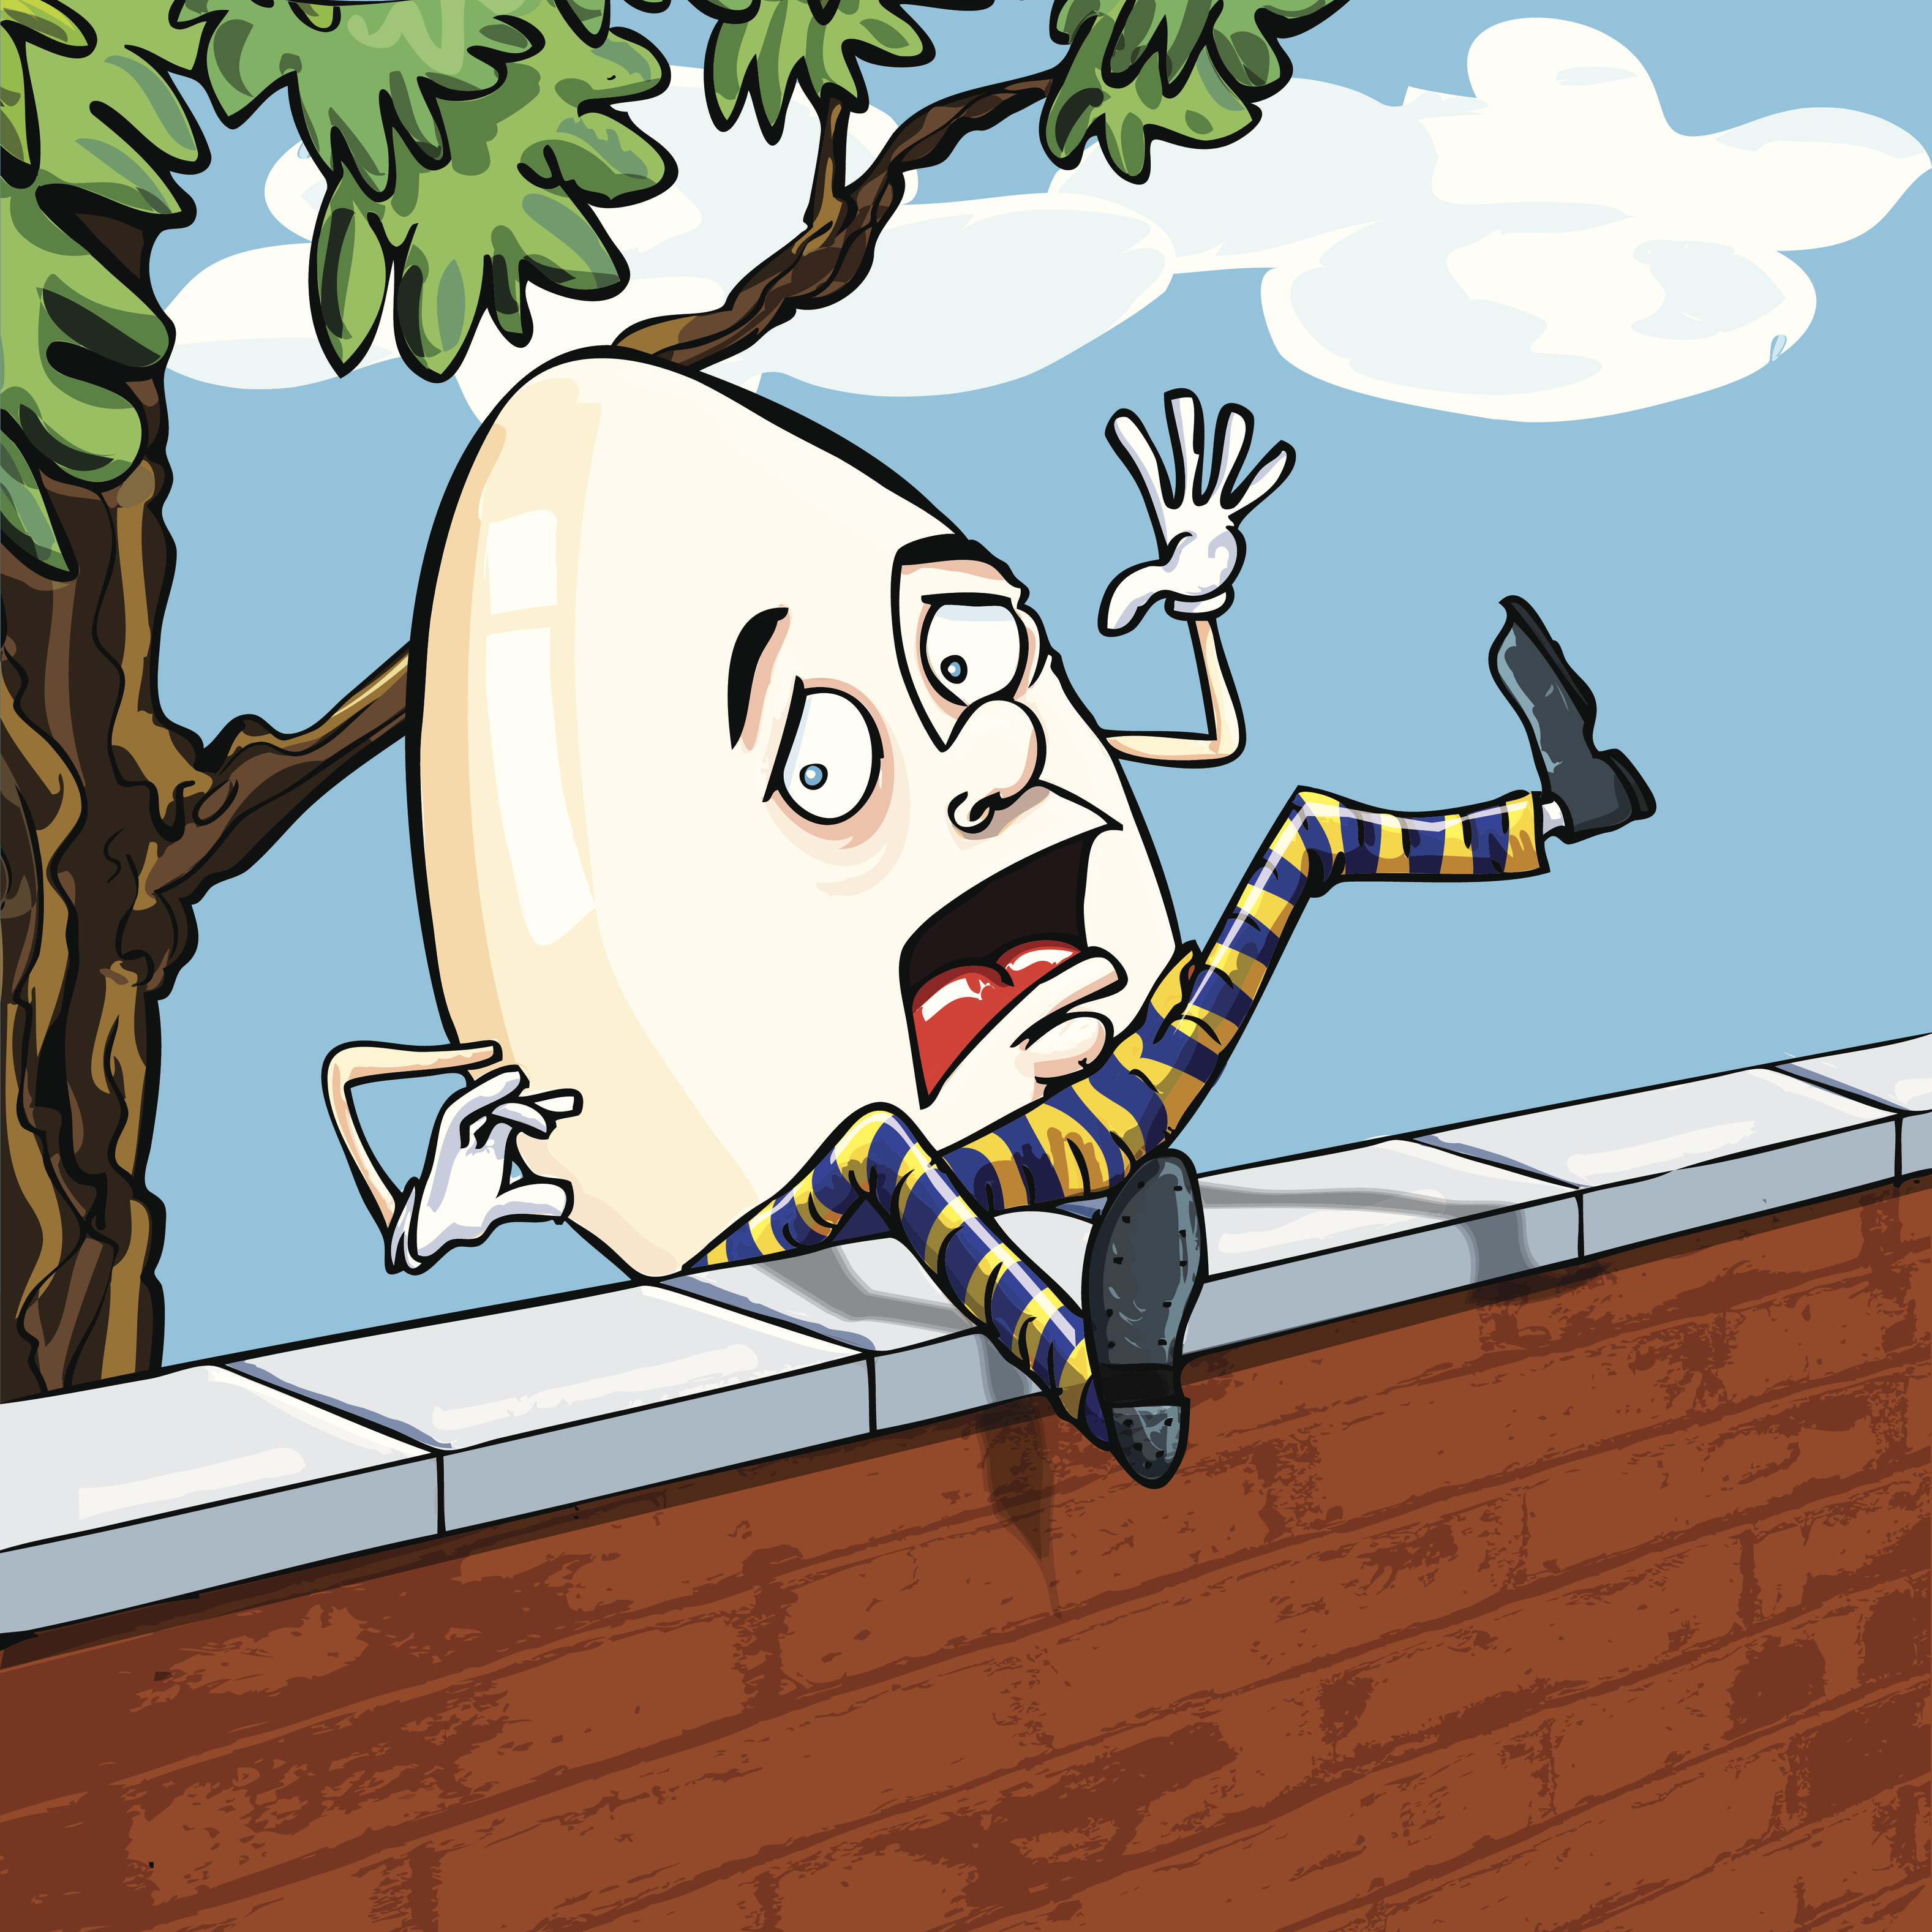 Humpty dumpty clipart party. Channeling do we all